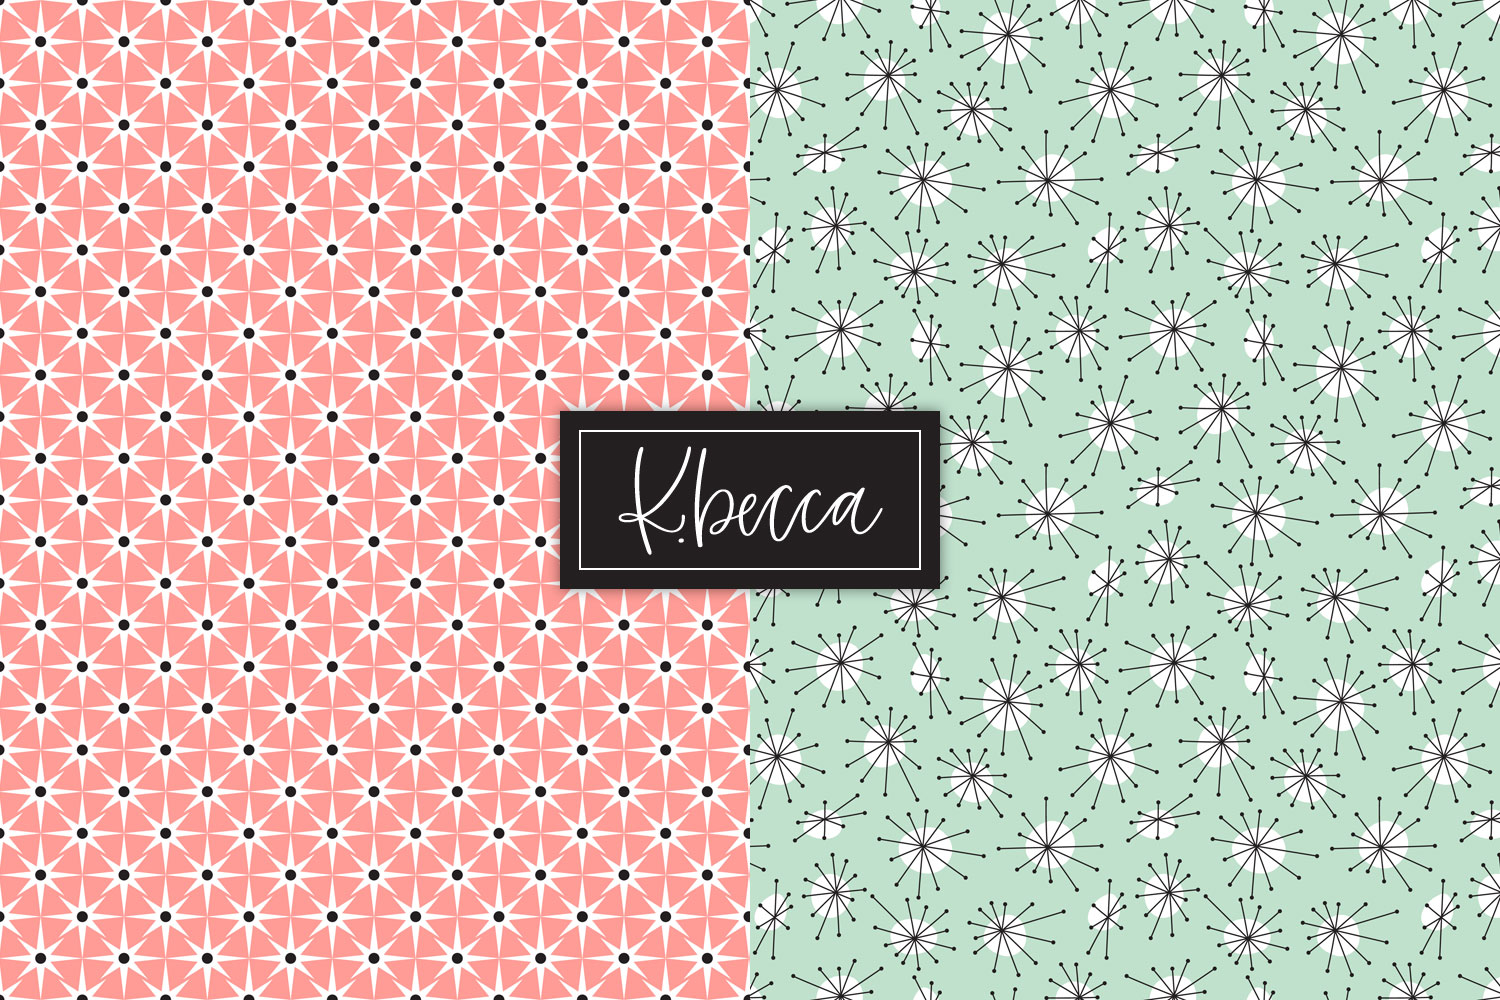 Retro 1950s Background Patterns Seamless example image 7